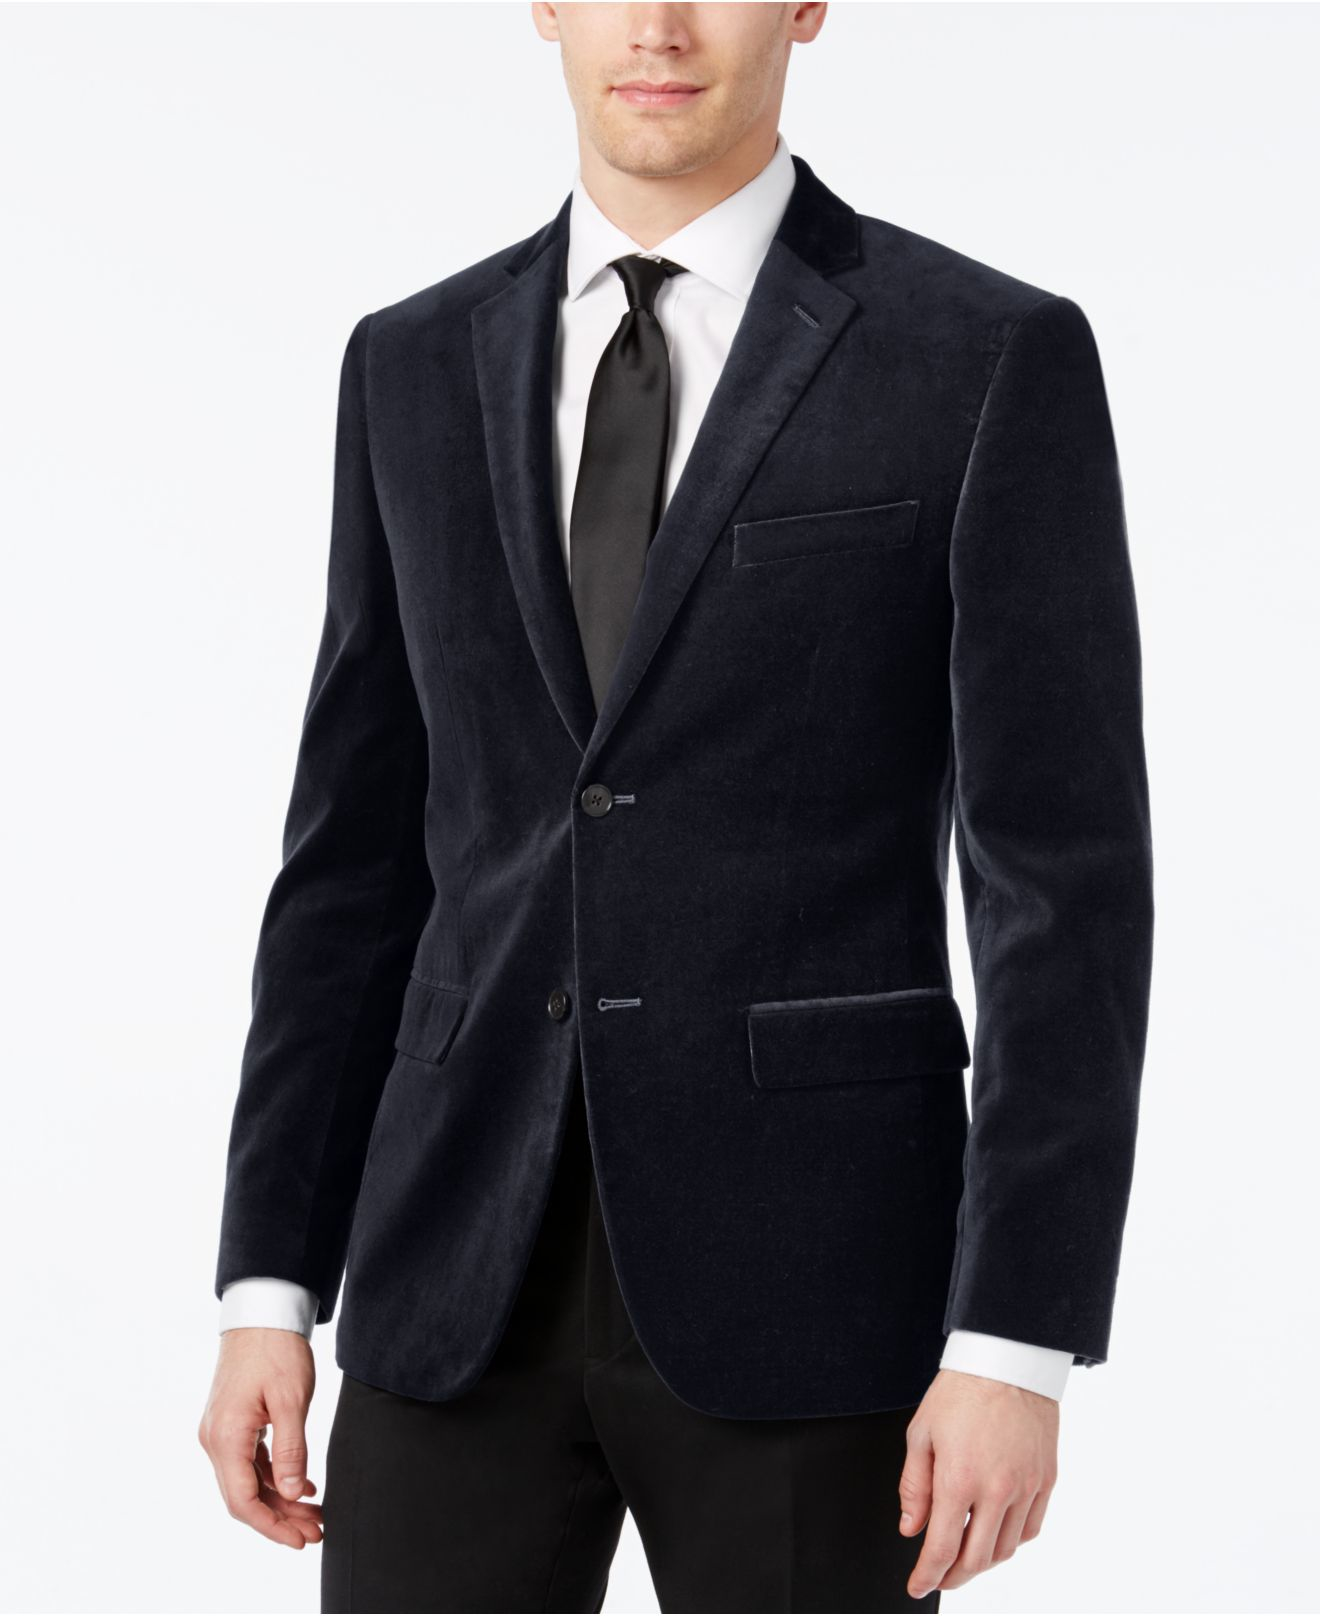 "Studio Suits for the best Sports Coat & Jacket, Custom Blazers with Cotton, Suede, Leather Patch, Linen, Twill & Italian Sports Jackets, Men""s, Blue, Gray, Black, Brown, White, Green Sport Coats and ."